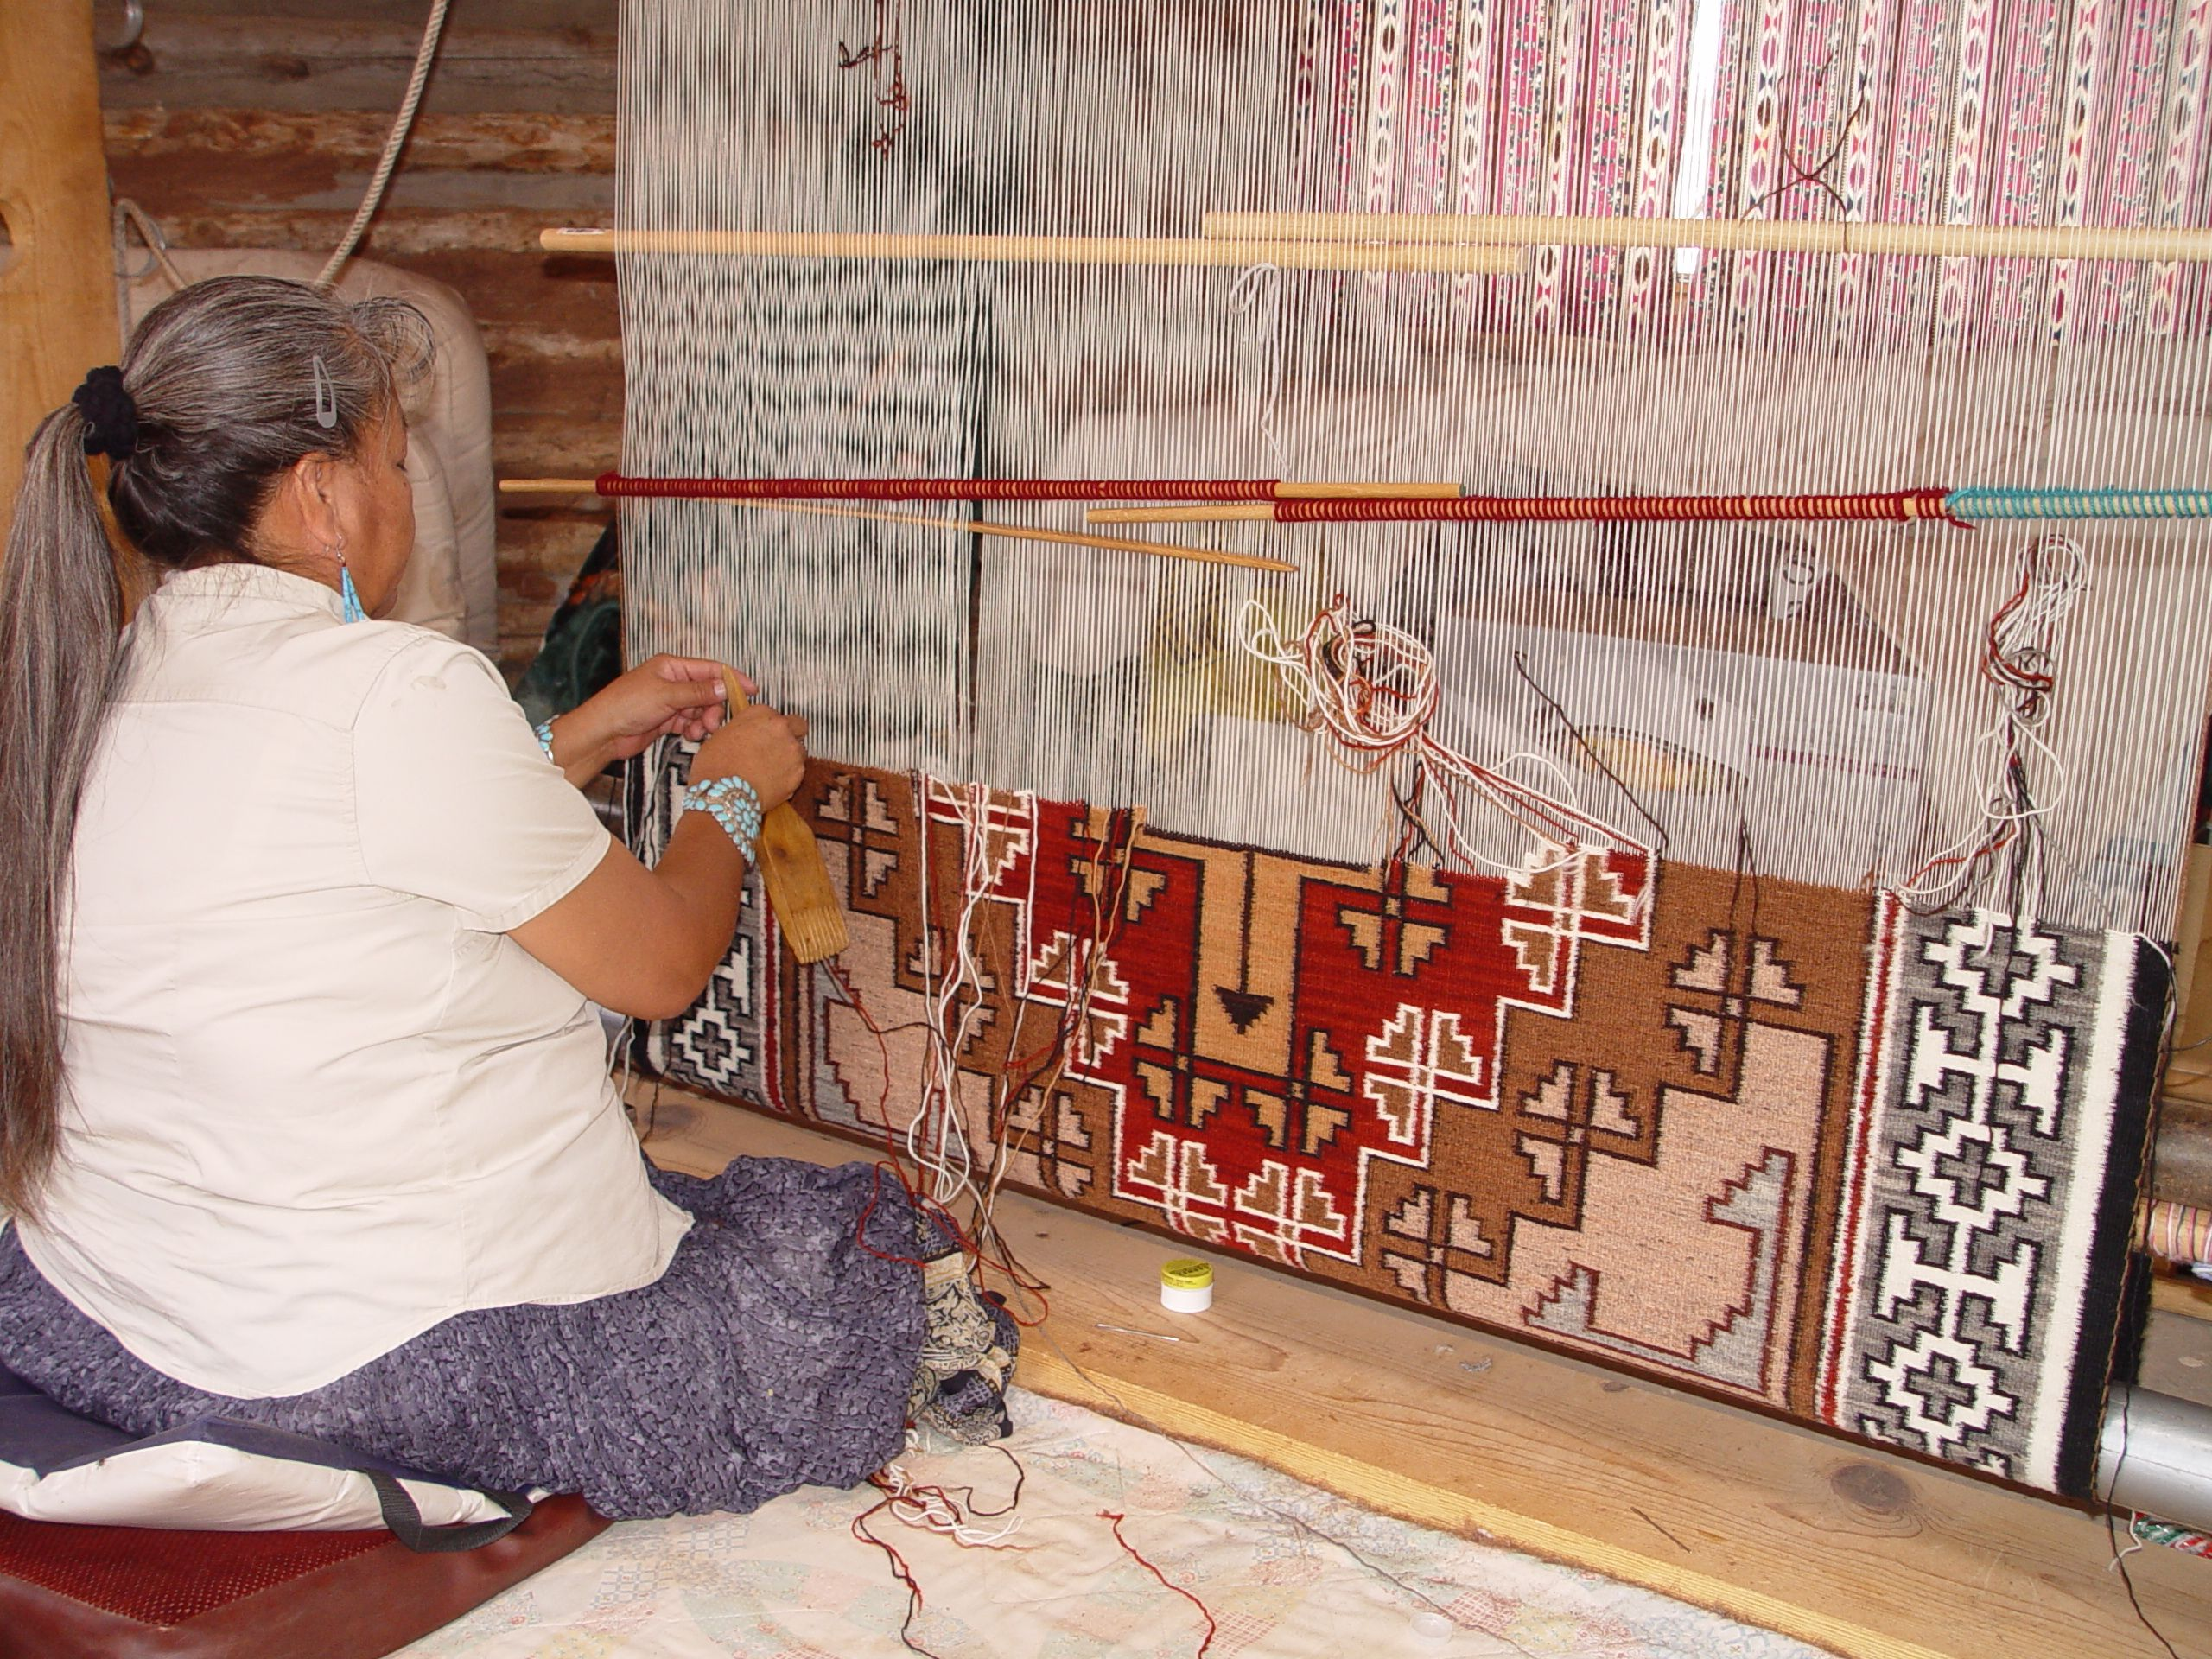 Navajo Rug In Progress Notice How She Is Working On The